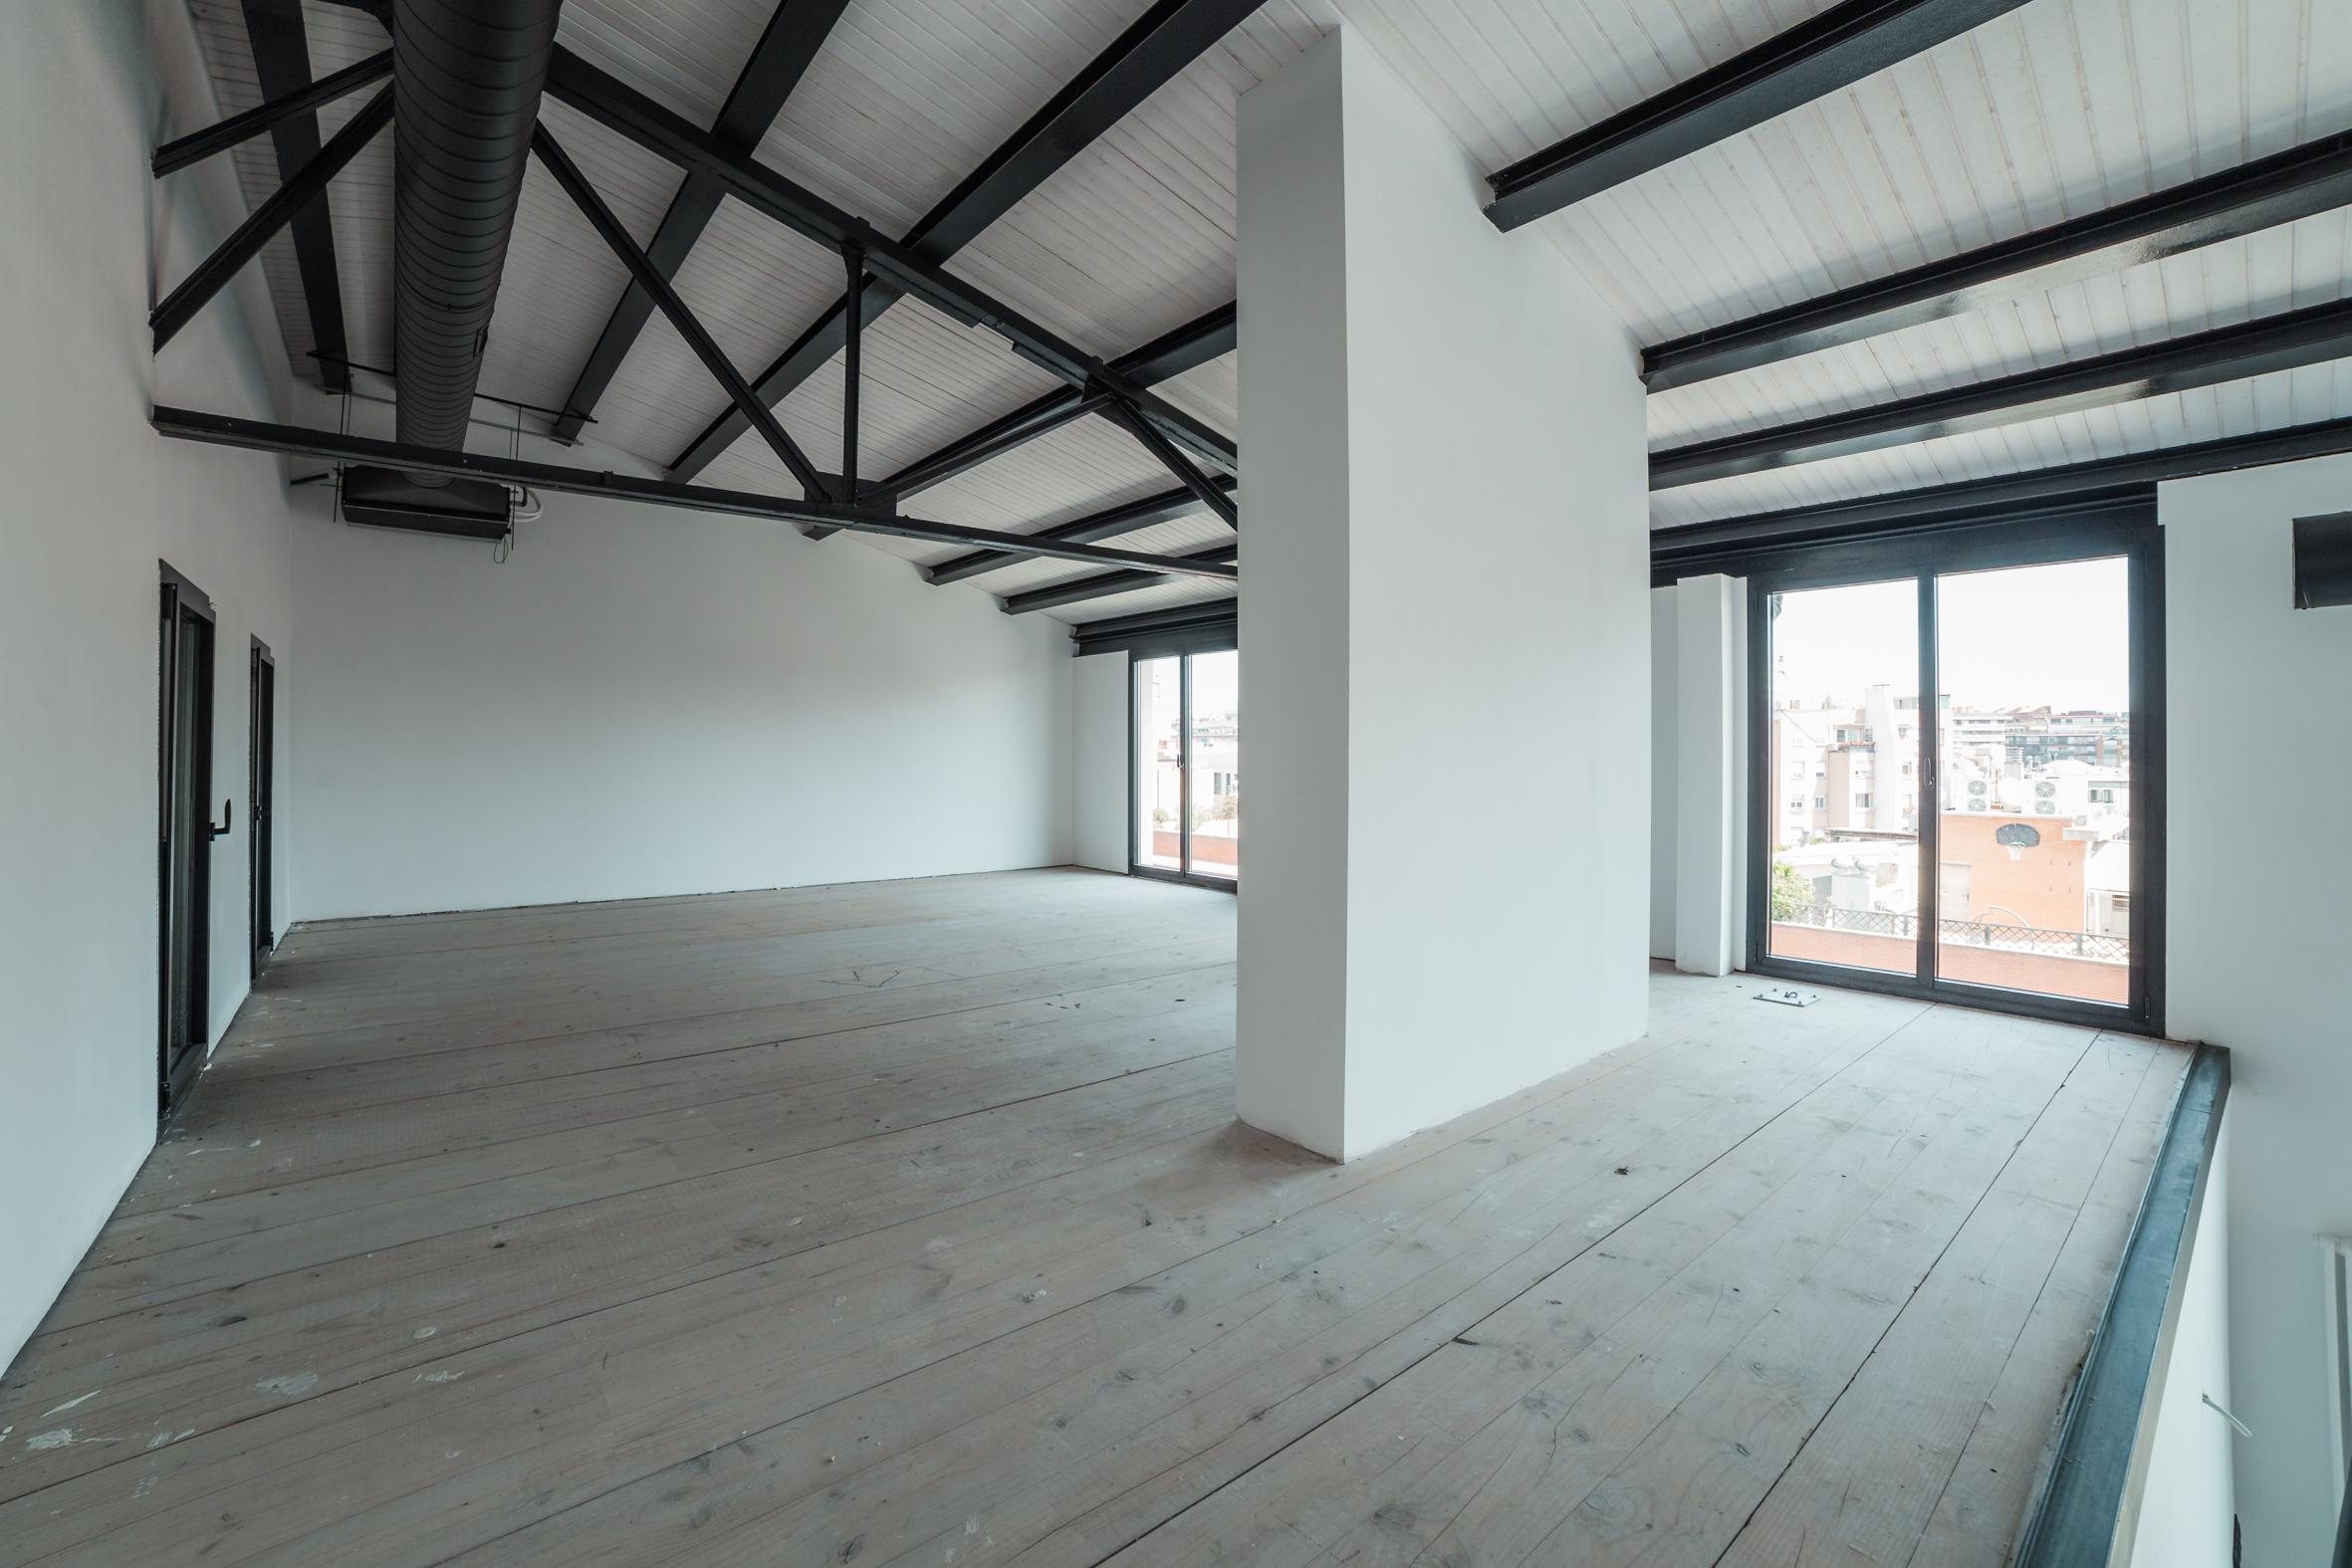 251675 Penthouse for sale in Les Corts, Les Corts 3